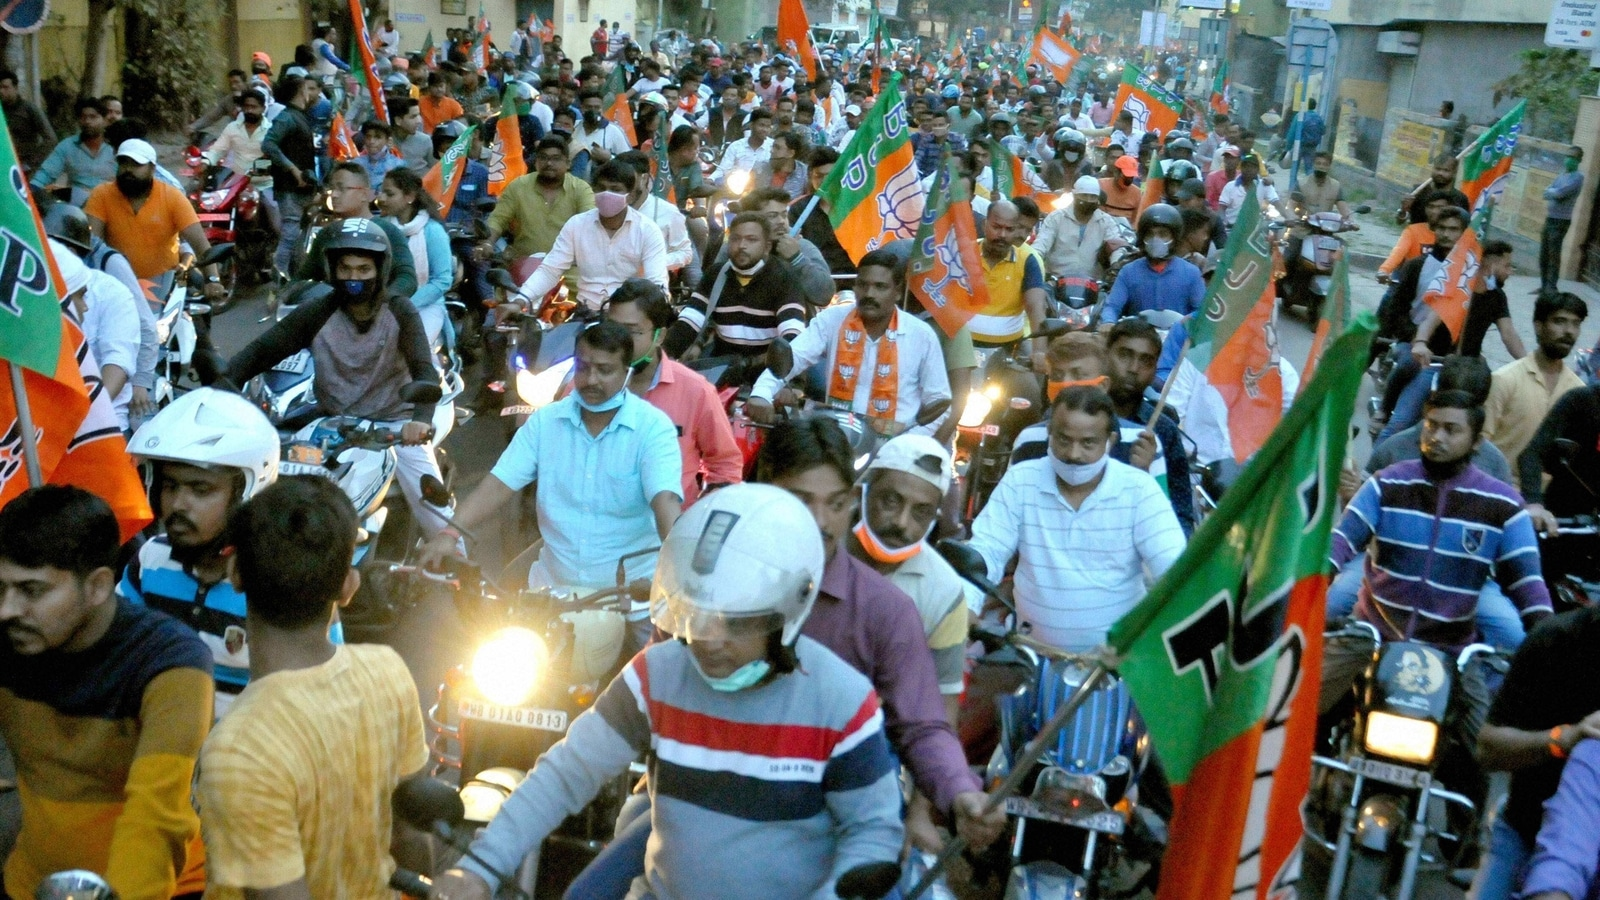 News updates from HT: EC bans bike rallies 72 hours before poll day and all the latest news